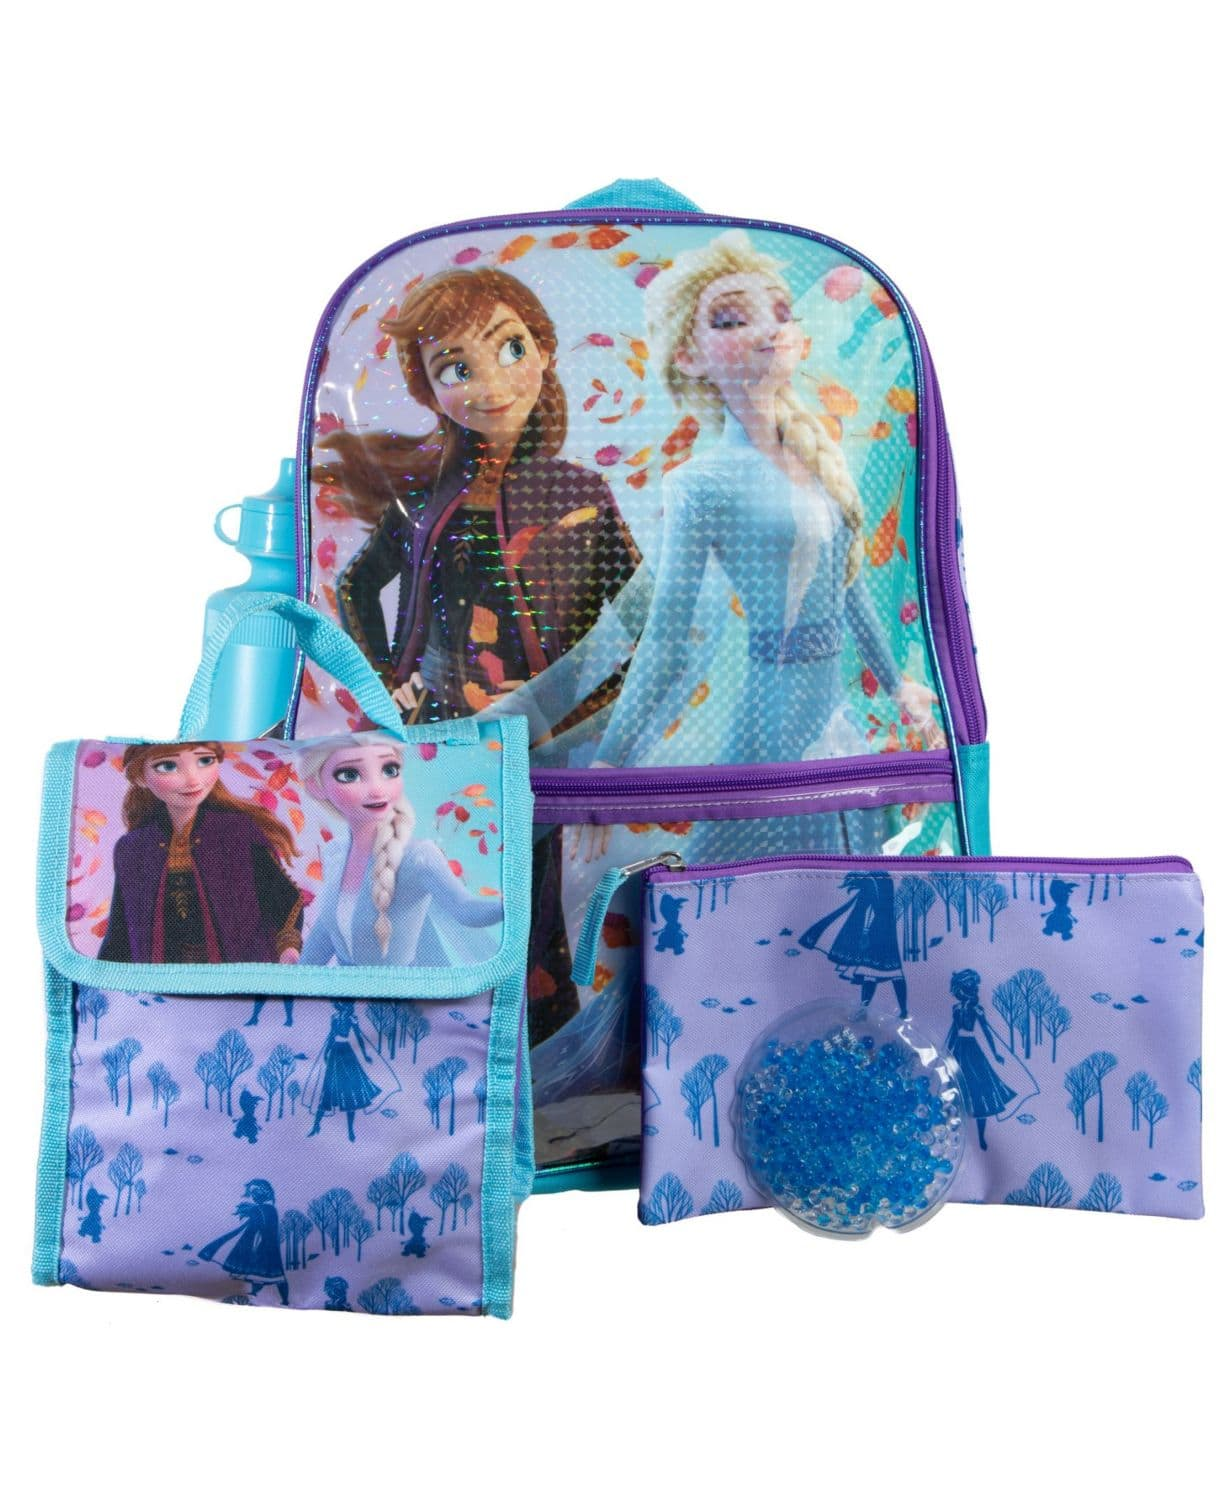 5-Piece Kids' Backpack Sets (Frozen, Minnie Mouse, Avengers & More) $16 at Macy's w/ Free S&H on $25+